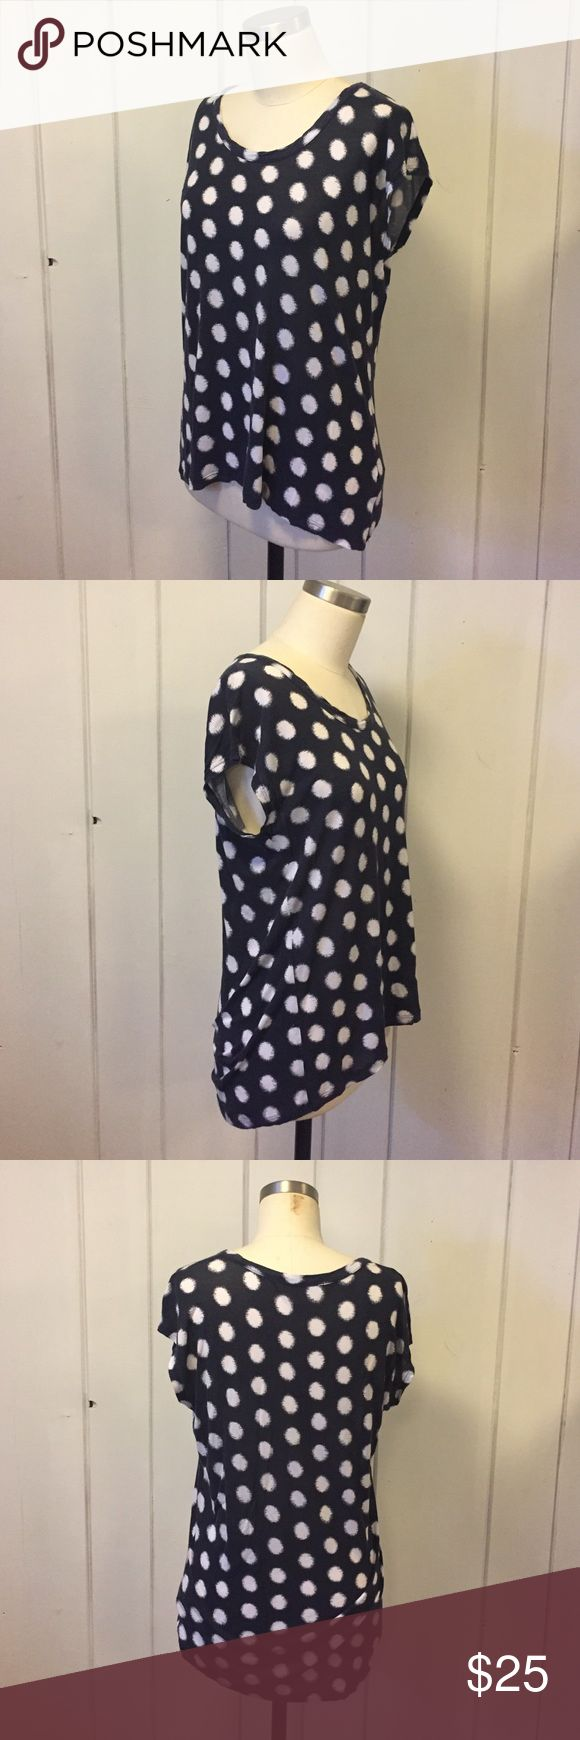 Michael Kors Blue White Polkadot Tshirt XS A sweet Tshirt by Michael Kors! Blue with white ikat style dots, lightly worn, has a faded look but it gives it character! Fits true to size, no rips tears holes or stains. MICHAEL Michael Kors Tops Tees - Short Sleeve